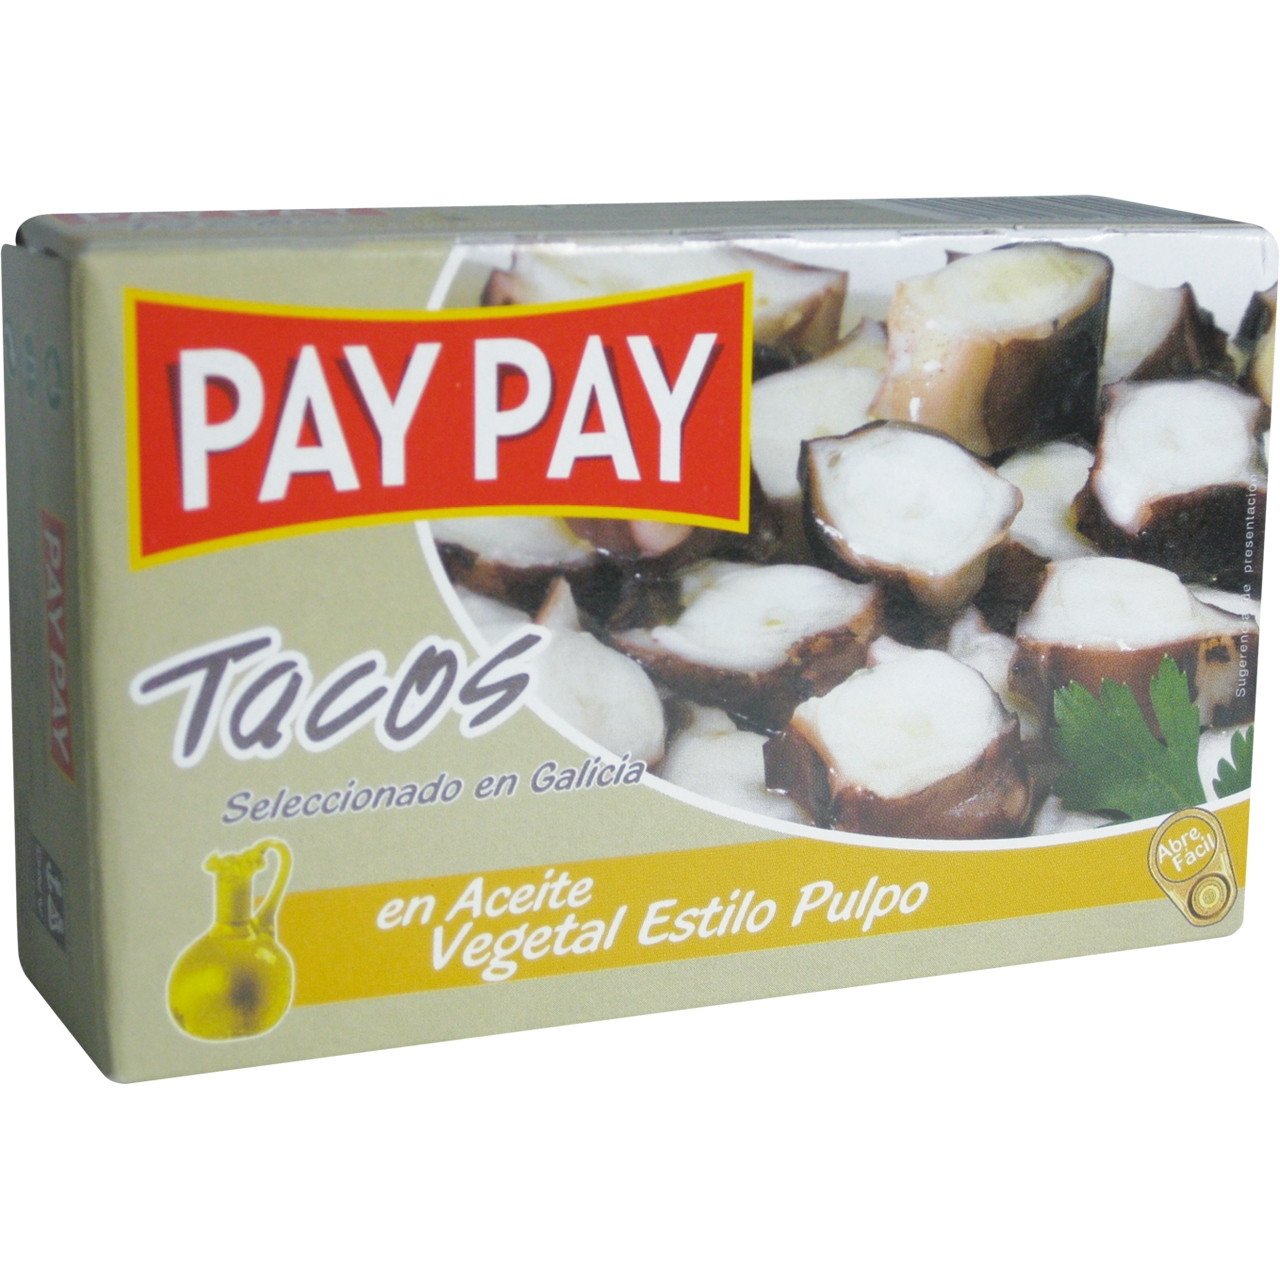 Pop en daus oli 120 pay pay f.o.